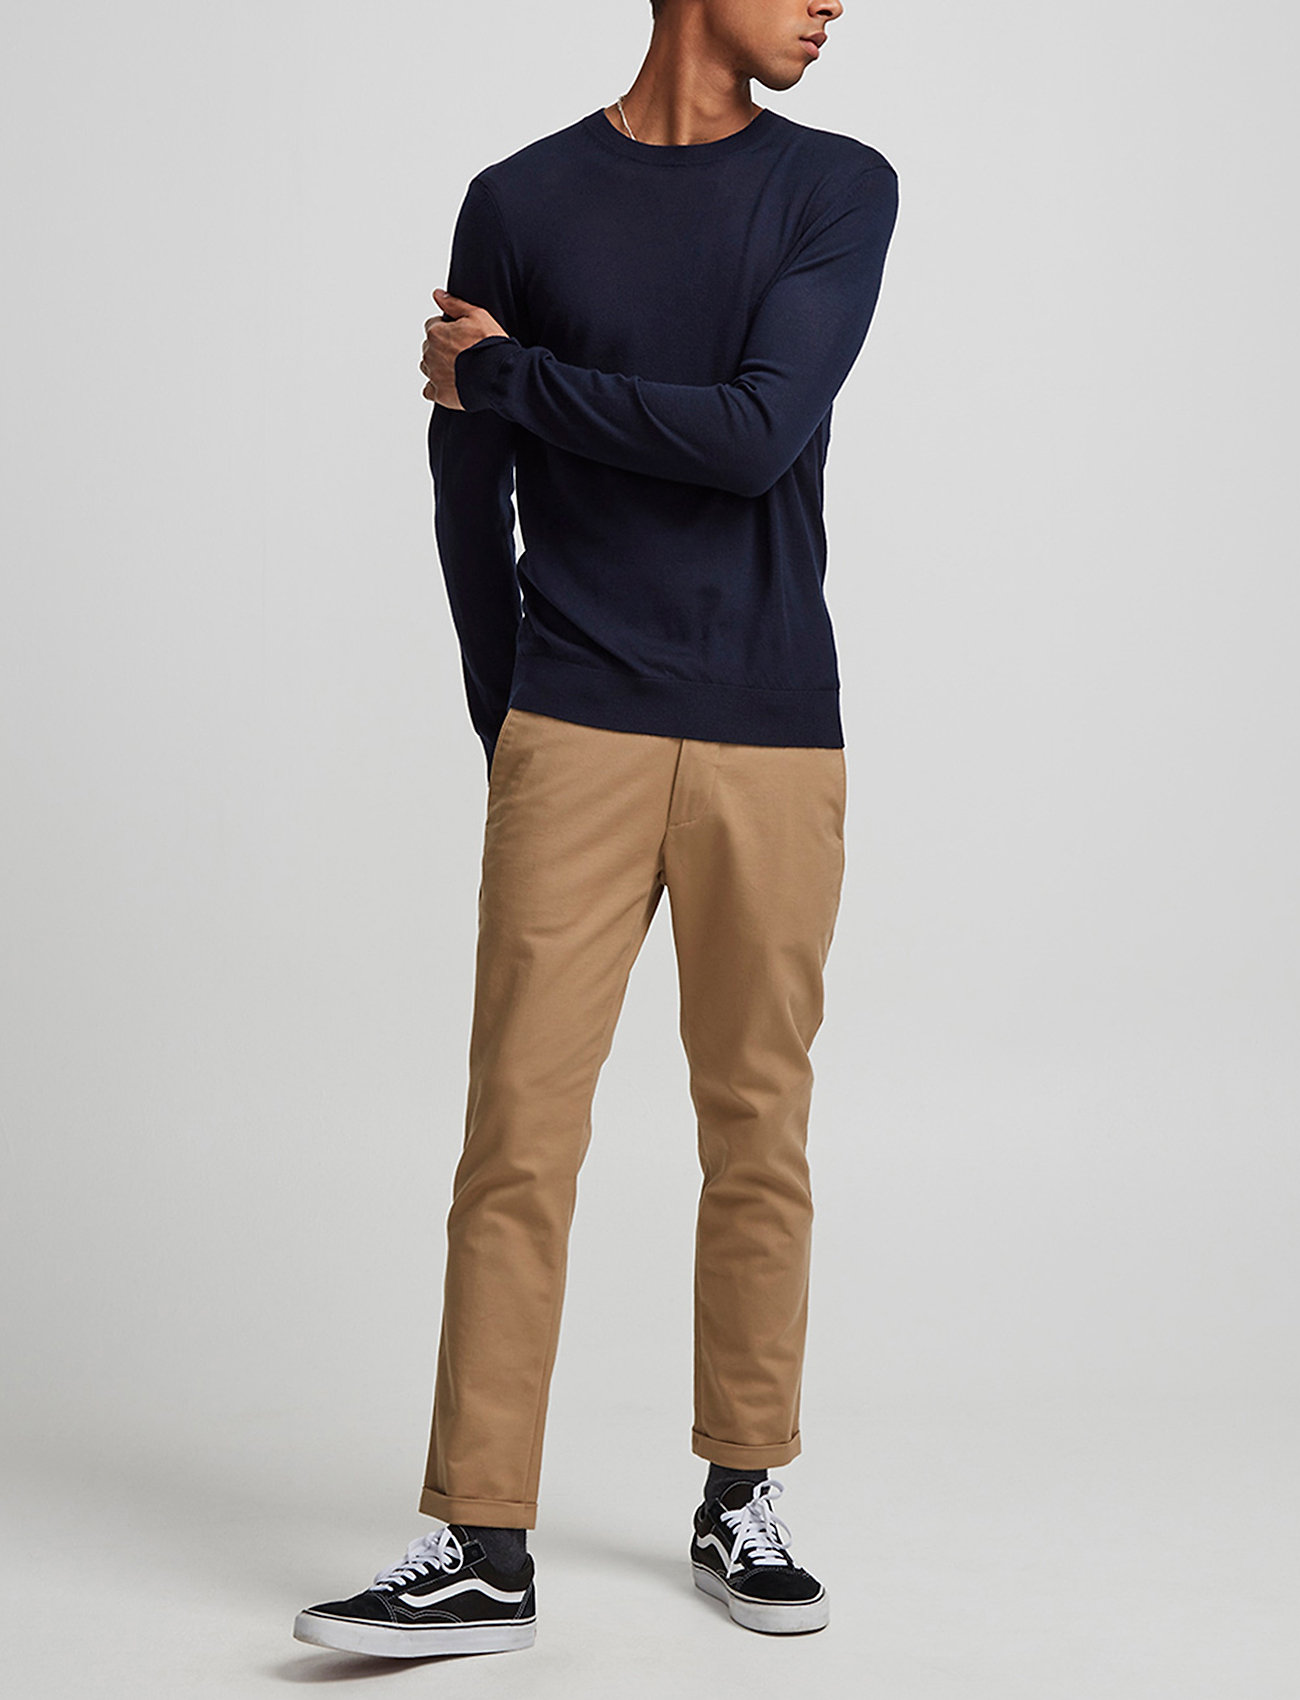 NN07 - Ted 6120 - basic knitwear - navy blue